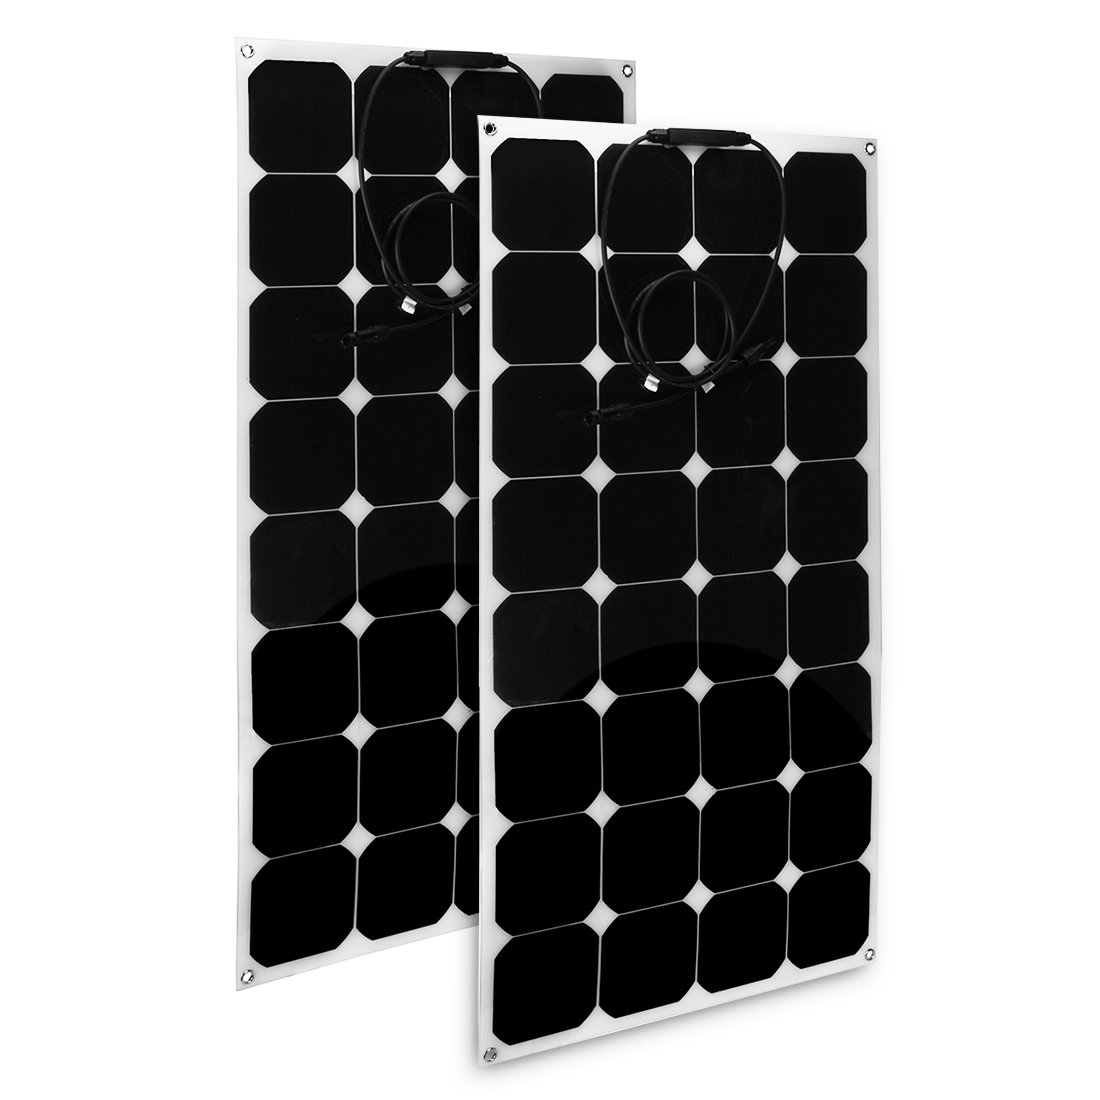 uxcell 2pcs 100W 18V 12V Solar Panel Charger Solar Cell Ultra Thin Flexible with MC4 Connector Charging for RV Boat Cabin Tent Car by BU LU SHI (Image #9)